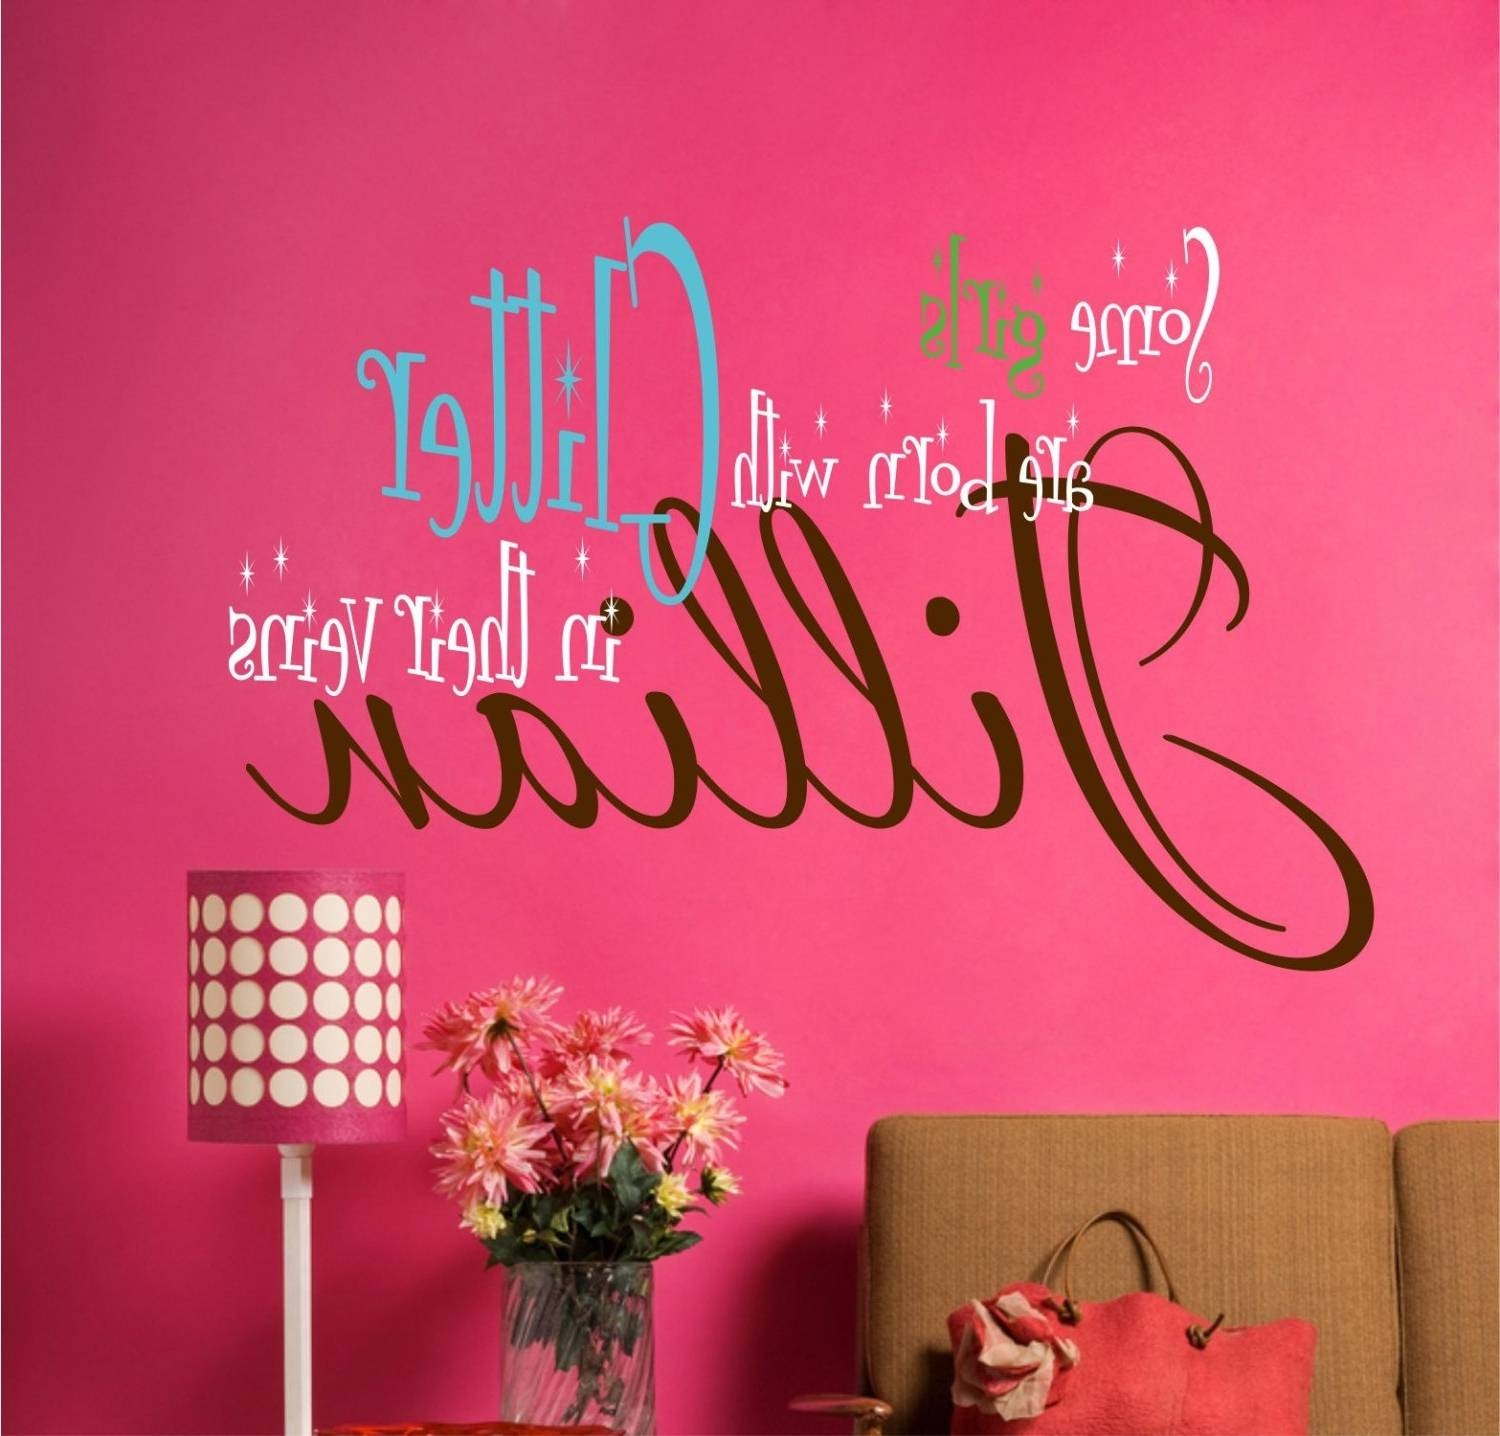 Teens Room : Popular Items For Teen Wall Art On Etsy In Teens Room With Best And Newest Wall Art For Teens (View 13 of 20)